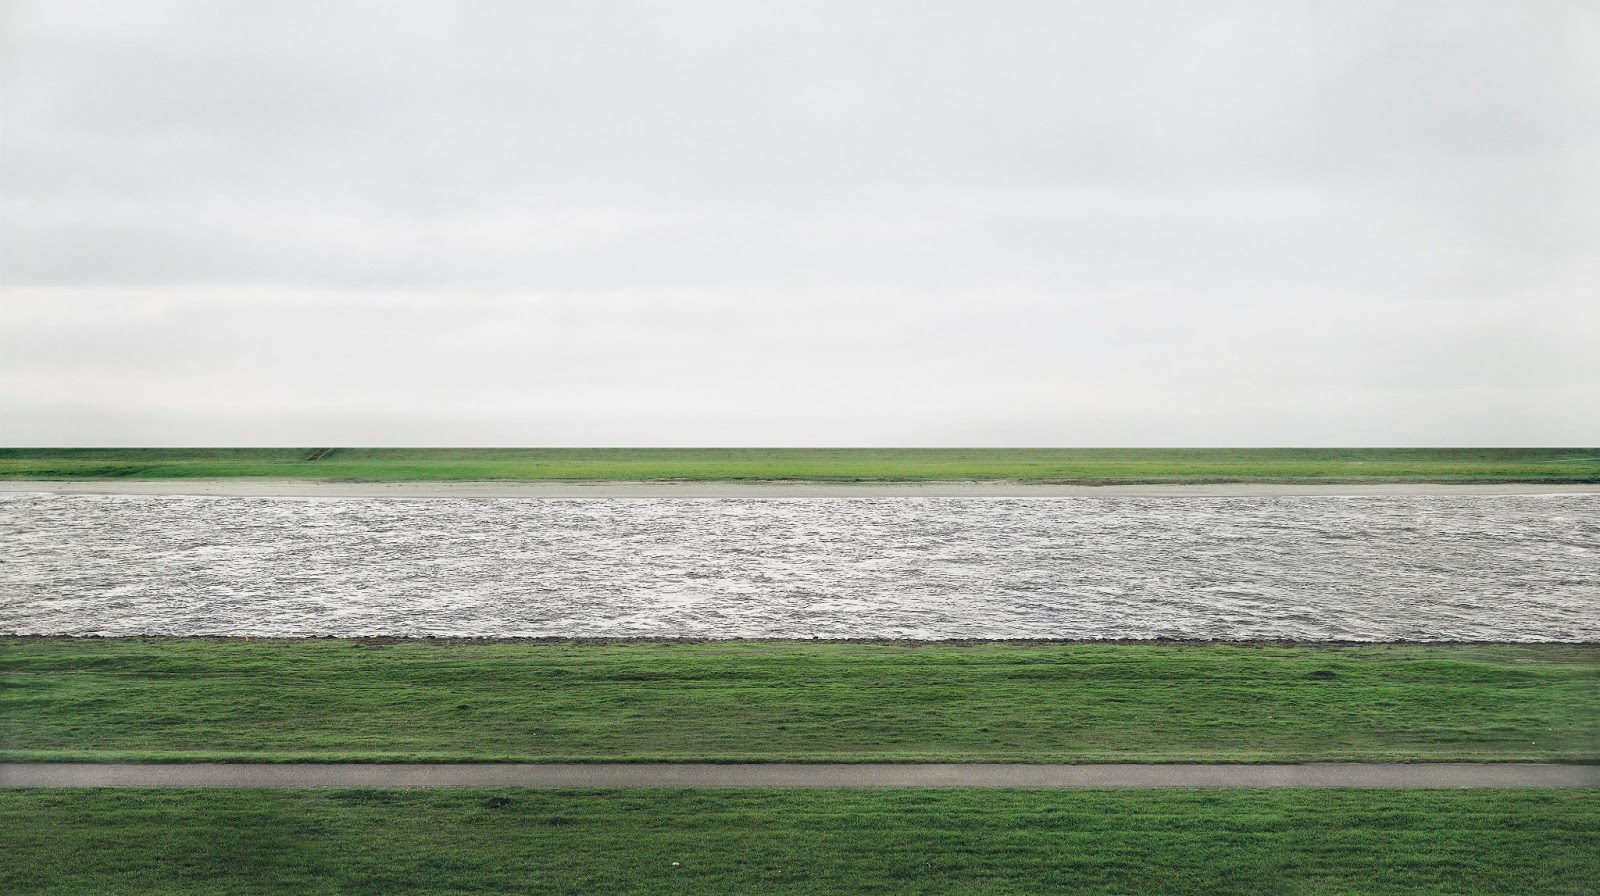 most-expensive-photo-andreas-gursky-the-rhein-1